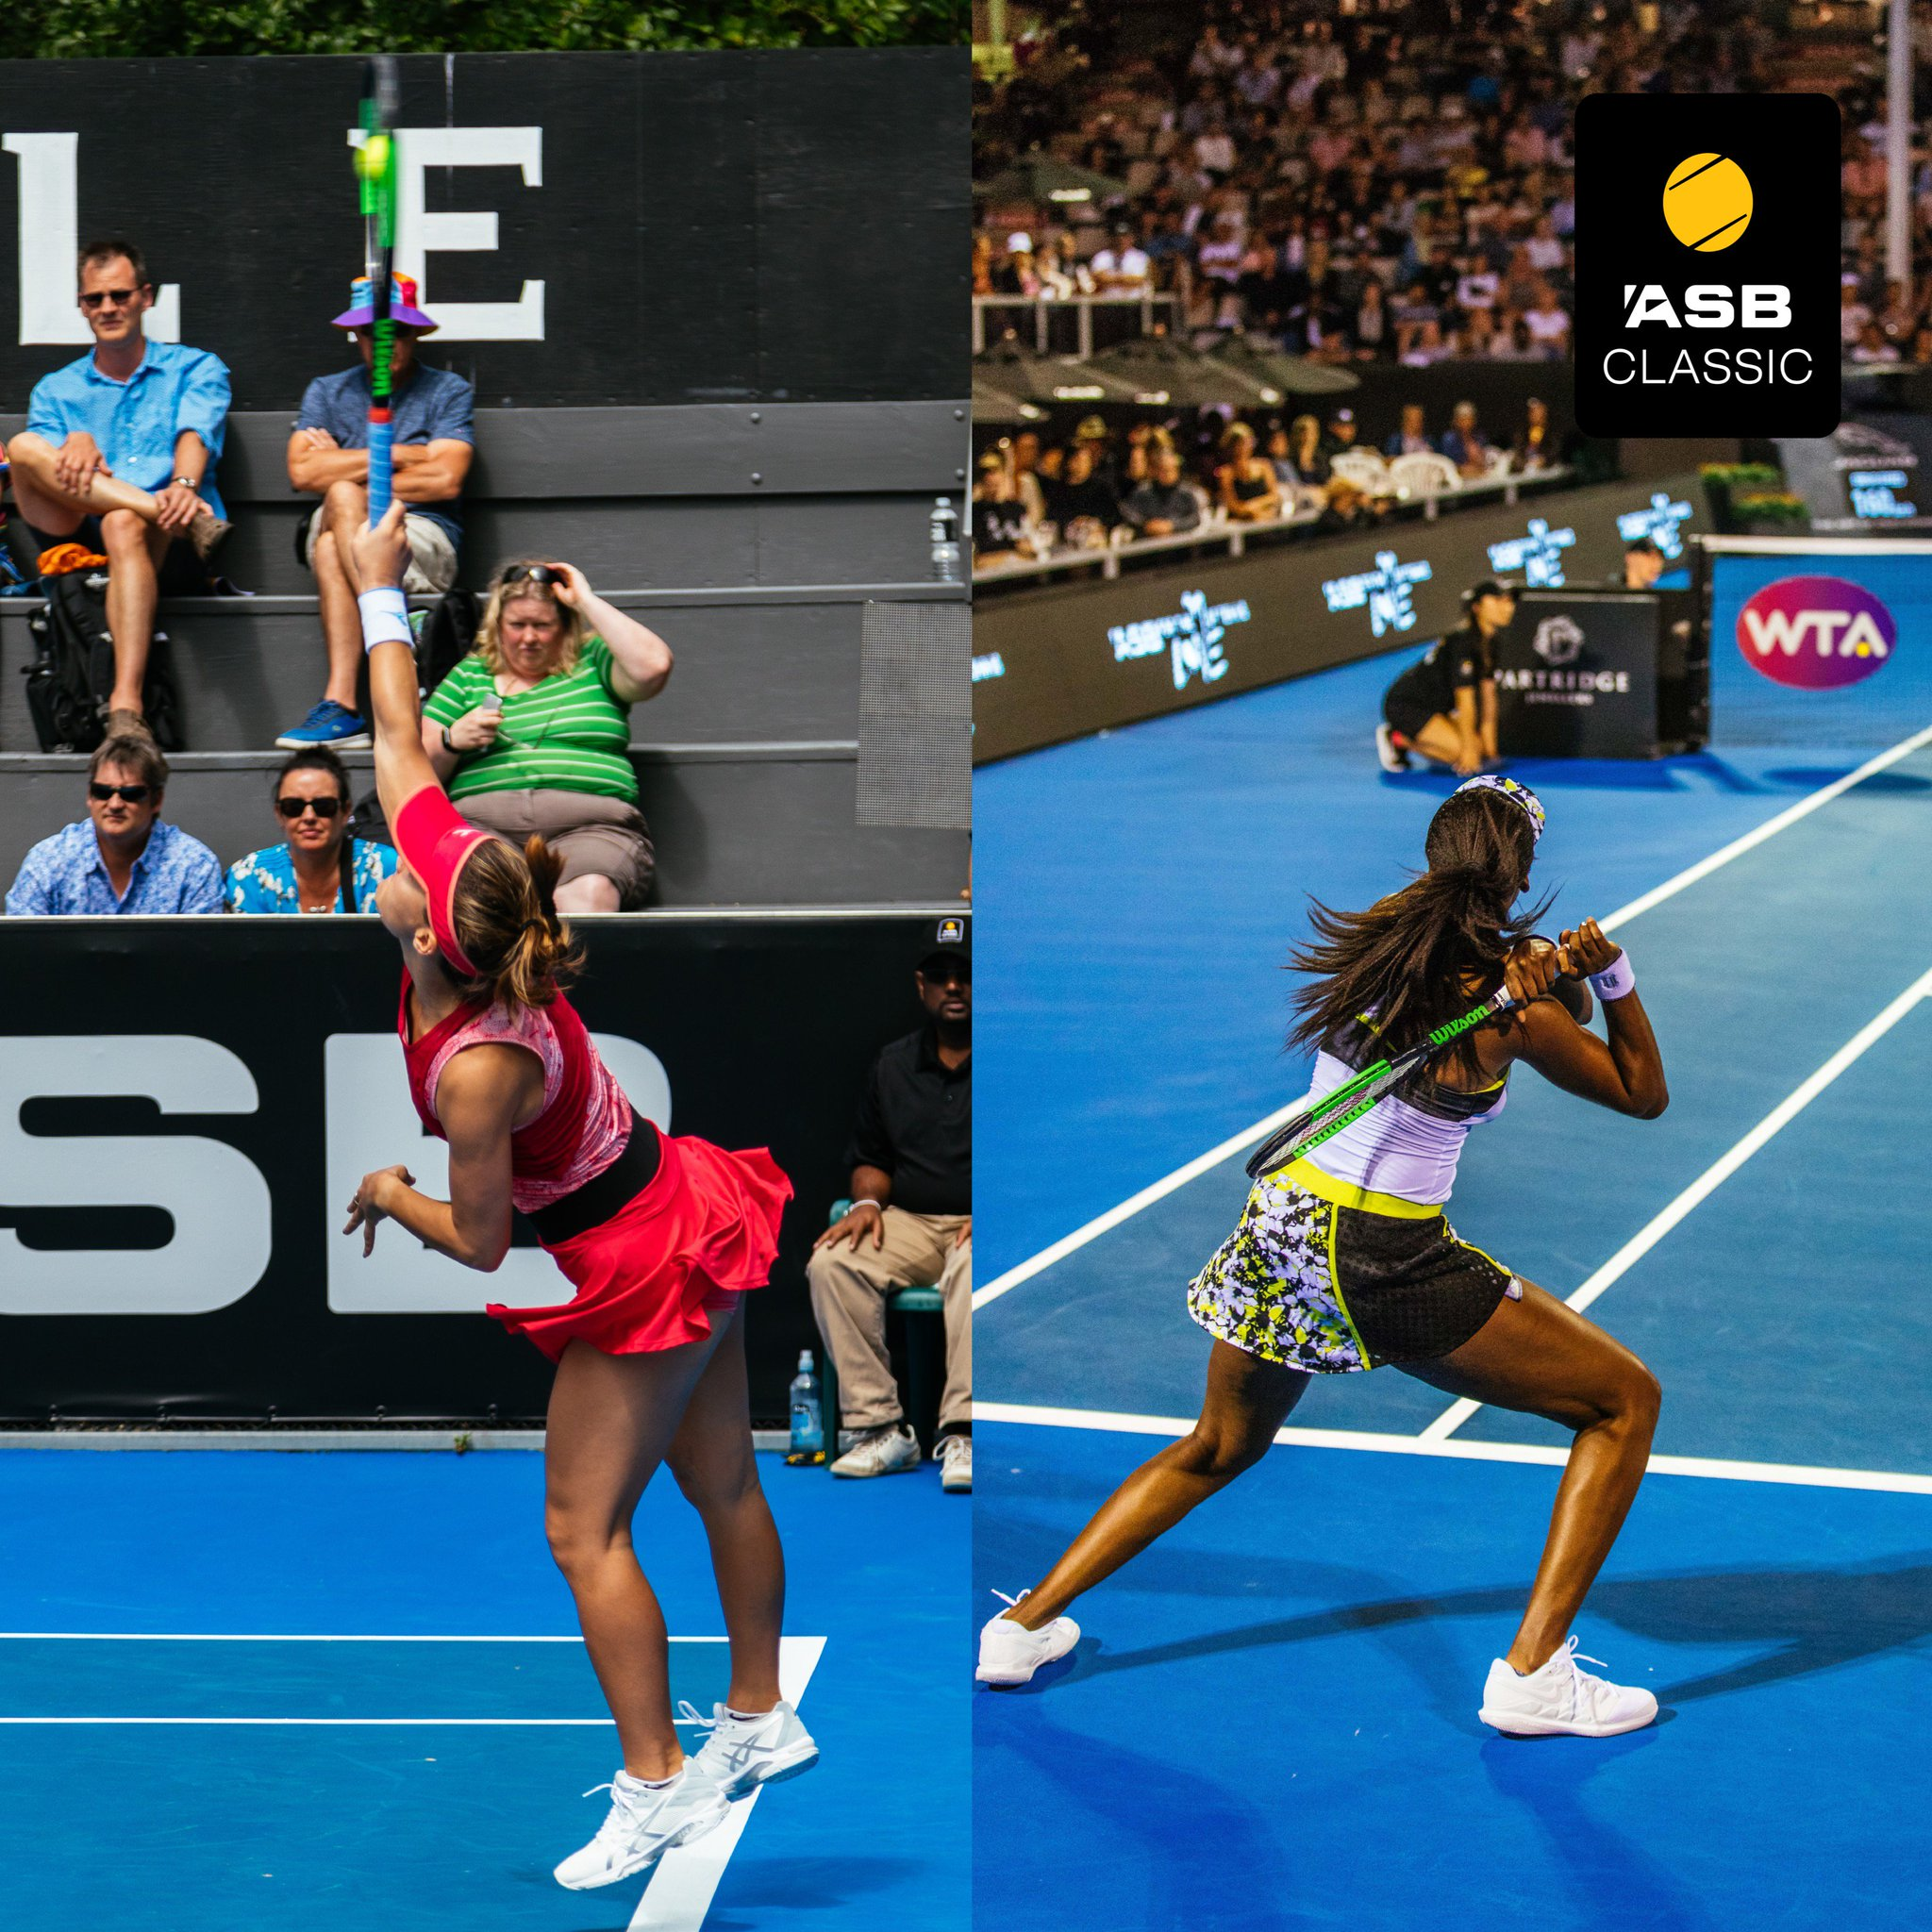 WTA AUCKLAND 2019 - Page 4 Dv9SvZdUcAEmdyq